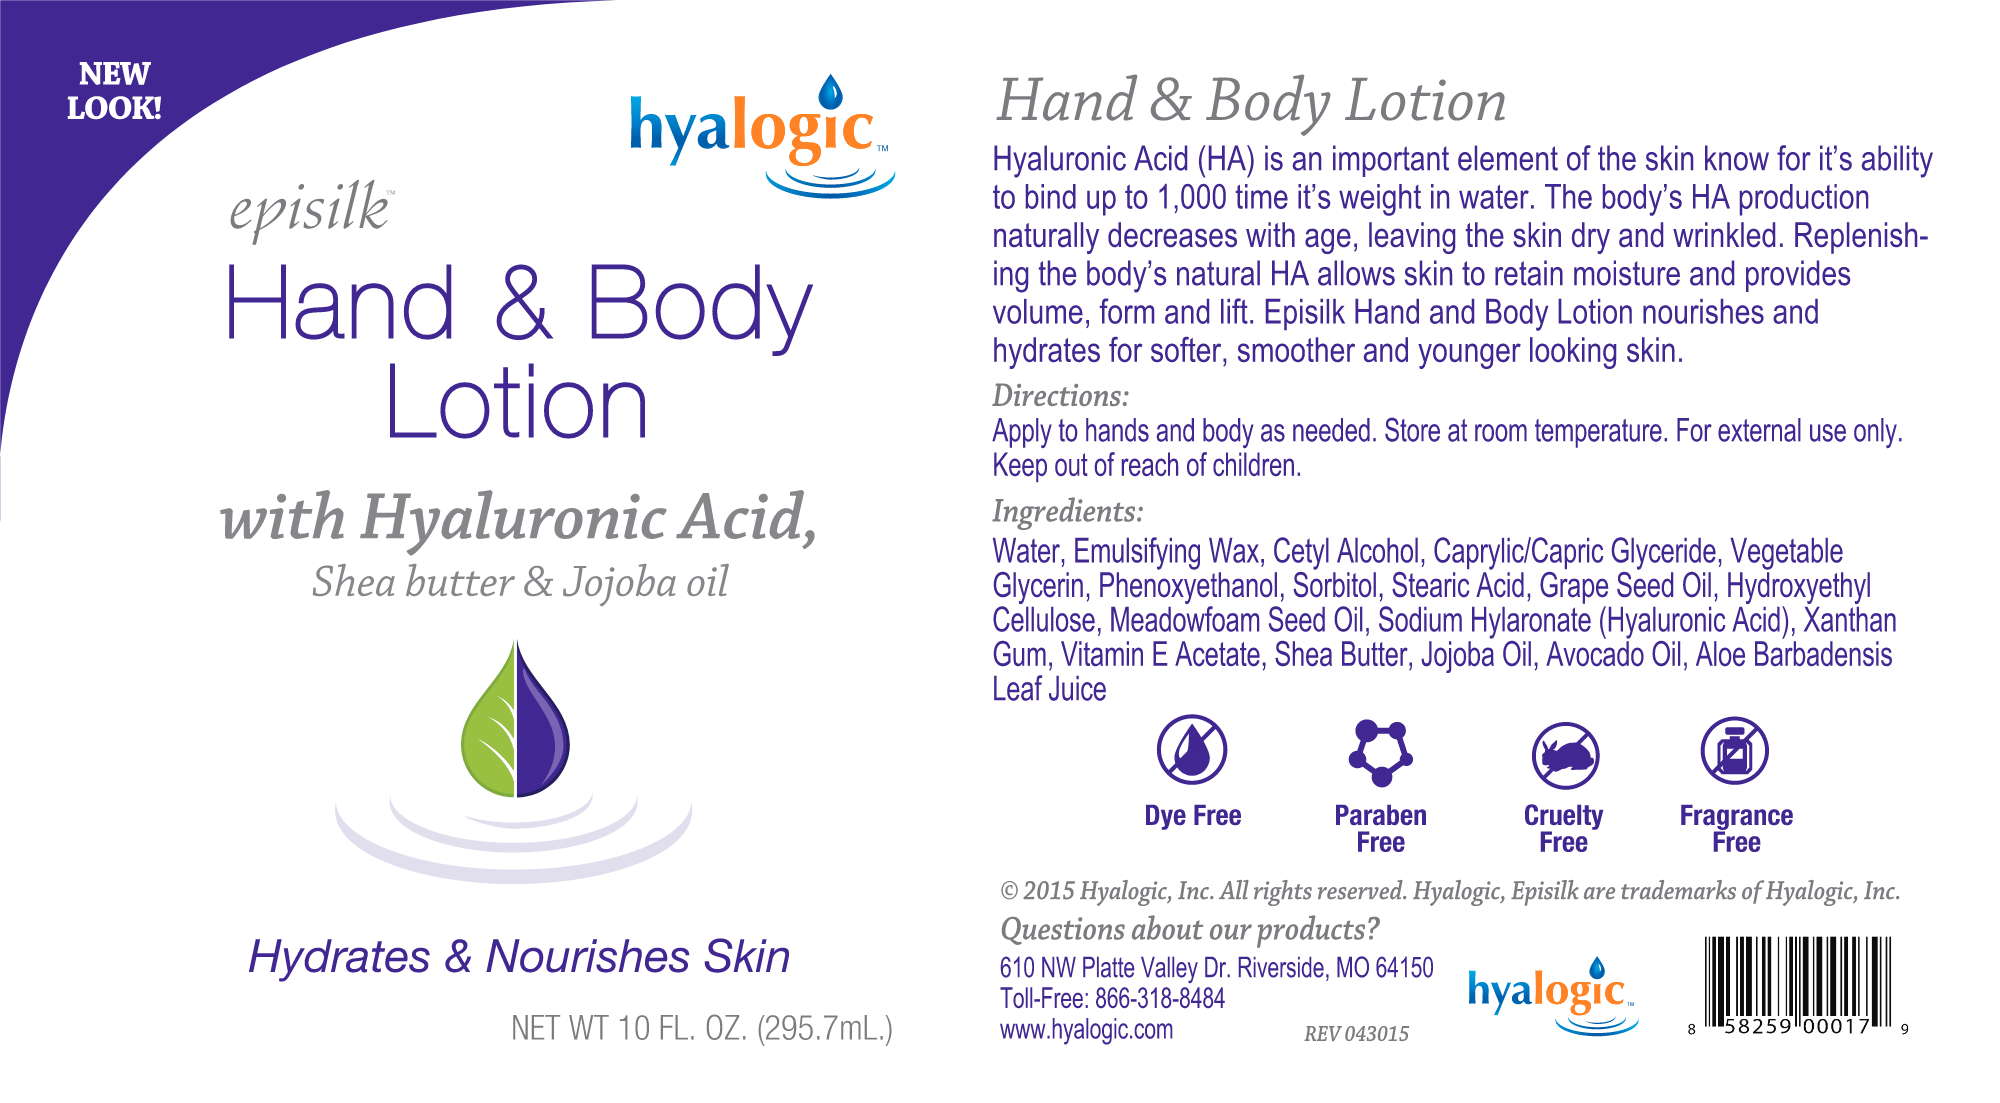 Hyalogic Hand and Body Lotion with HA